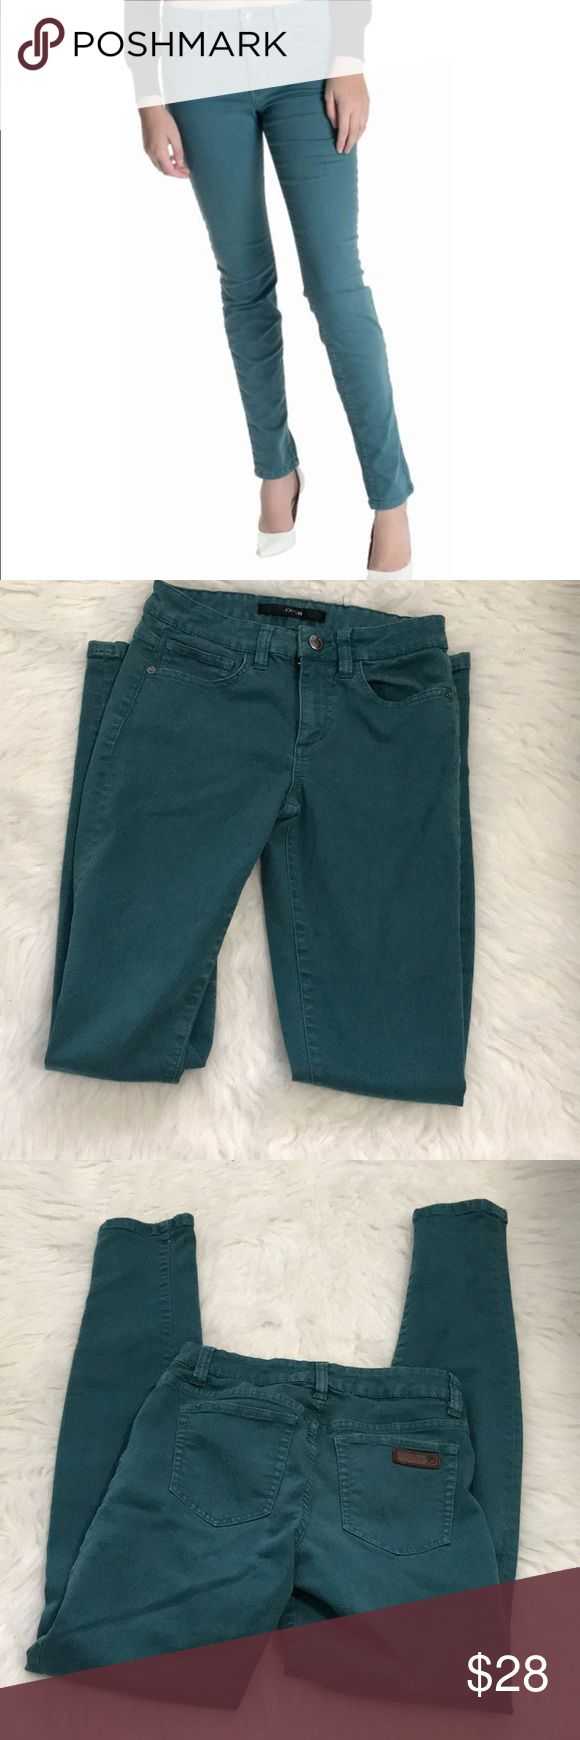 """Joe's skinny visionarie teal jeans These jeans are transitional for spring or fall, pair them up with pumps or boots. Size 25 which fits 0-2 inseam is 31"""" Joe's Jeans Pants Skinny"""